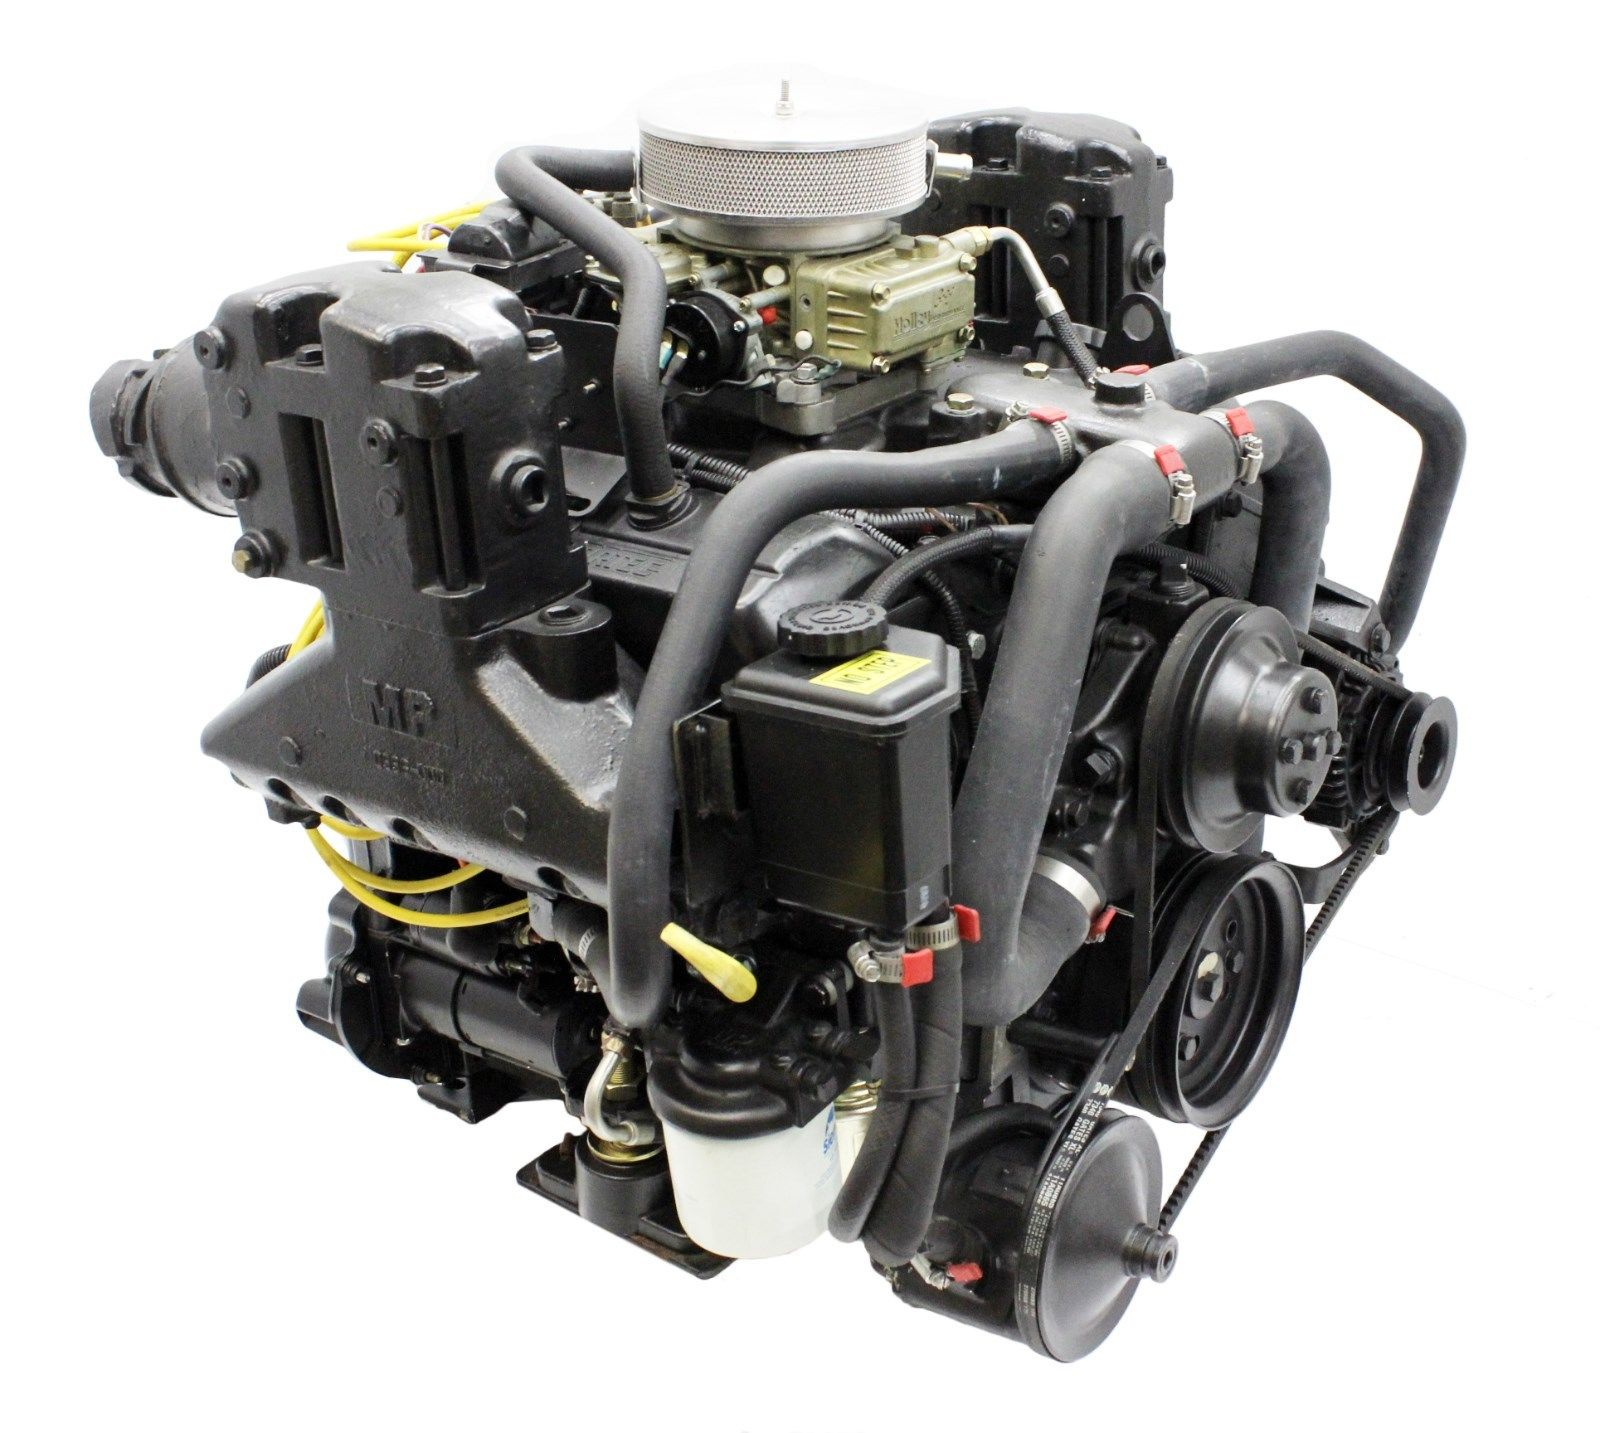 4 3l vortec v6 4bbl new boat motor engine 225hp for mercruiser volvo omc ebay. Black Bedroom Furniture Sets. Home Design Ideas